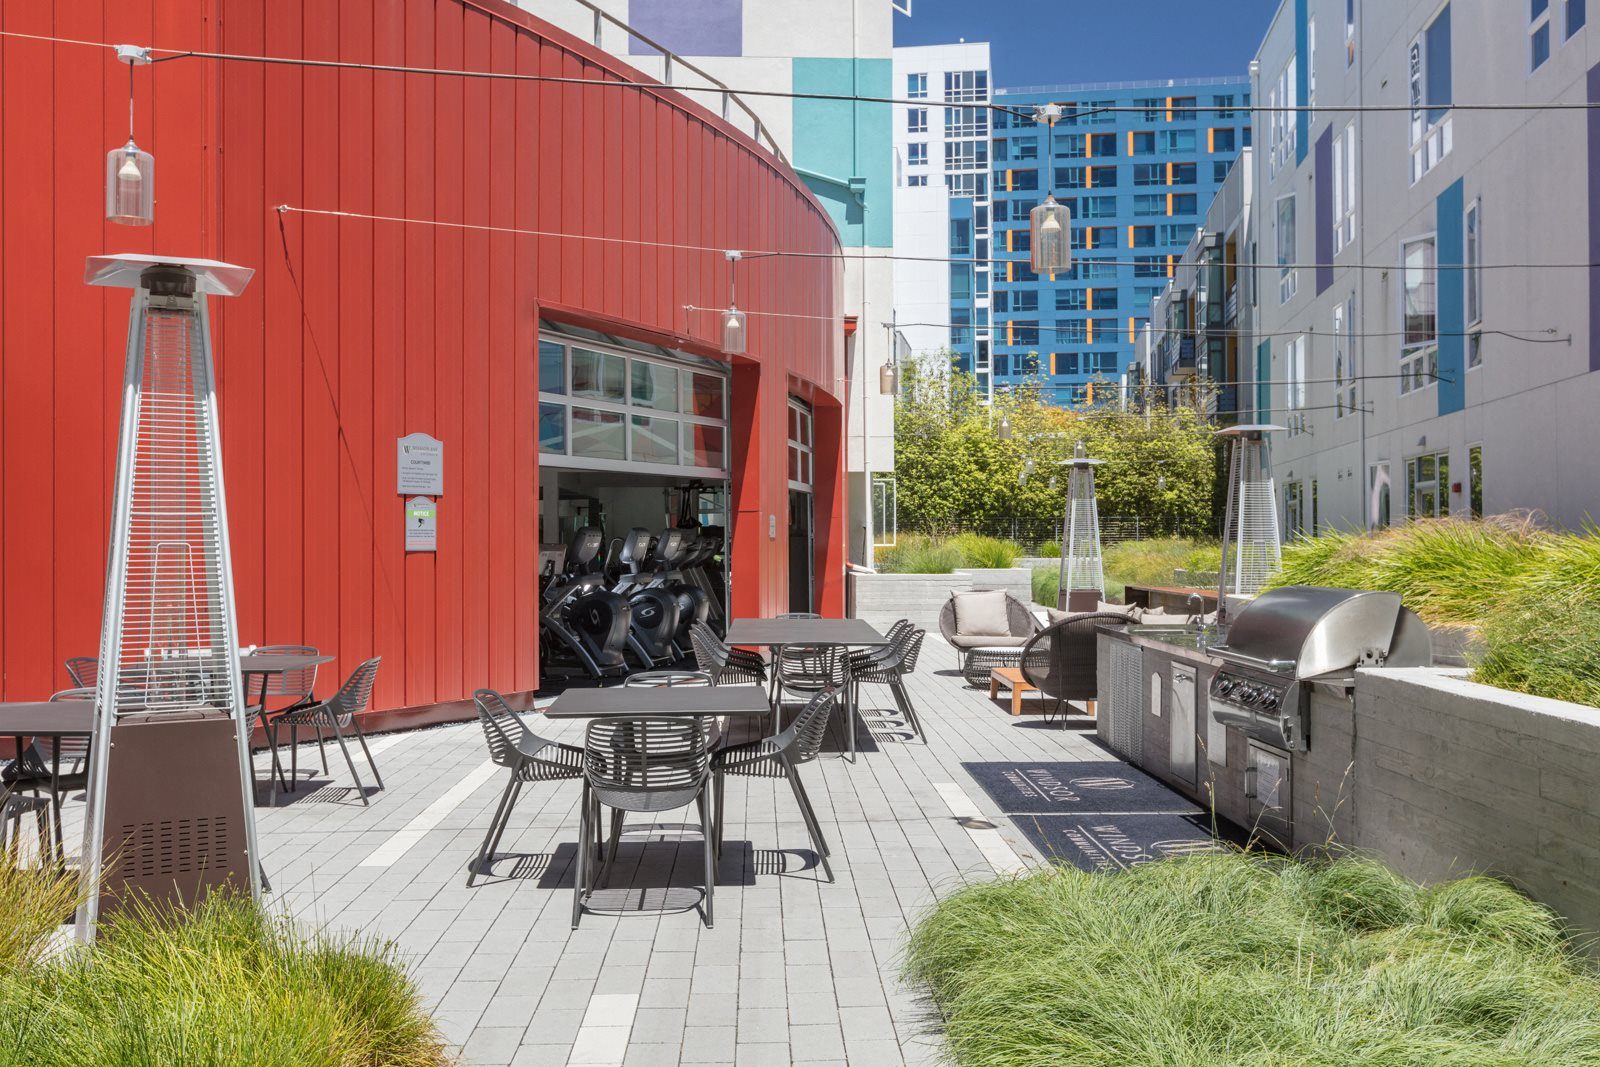 Courtyard Garden at Mission Bay by Windsor, California, 94158